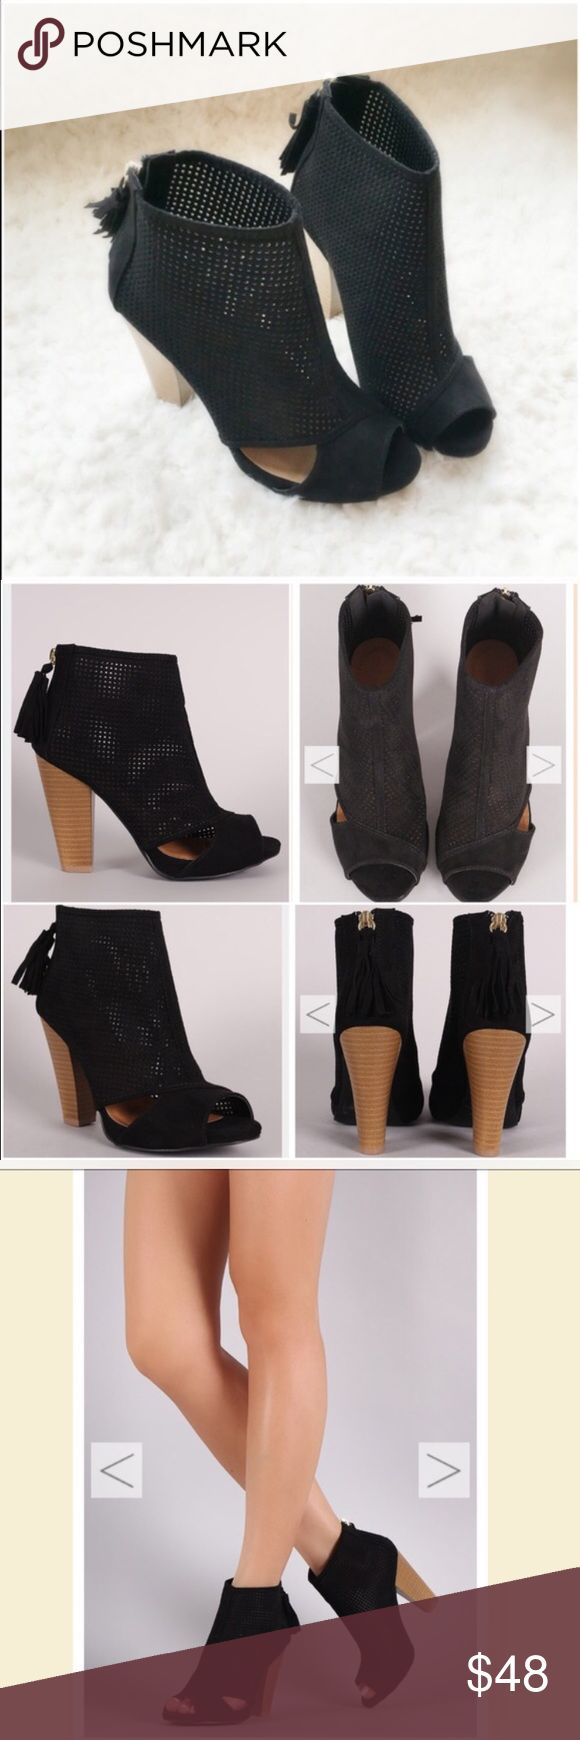 """NIB Black Caged/Cut Out Peep Toe Ankle Booties NIB Black Cut-Out Ankle Booties. These versatile booties feature a perforated vegan suede with side cut-outs, peep toe, and a chunky stacked heel. Tassel pull on a gold back-zip closure at the heel. Lightly padded insole, approx 4"""" heel. FITS TRUE TO SIZE. Available in 5.5, 6, 6.5, 7, 7.5, 8, 8.5, 9, 10. No Trades and No PaypalPrice is firm unless bundled, also available in taupe color, see my closet for taupe listing. Will not be restocked…"""